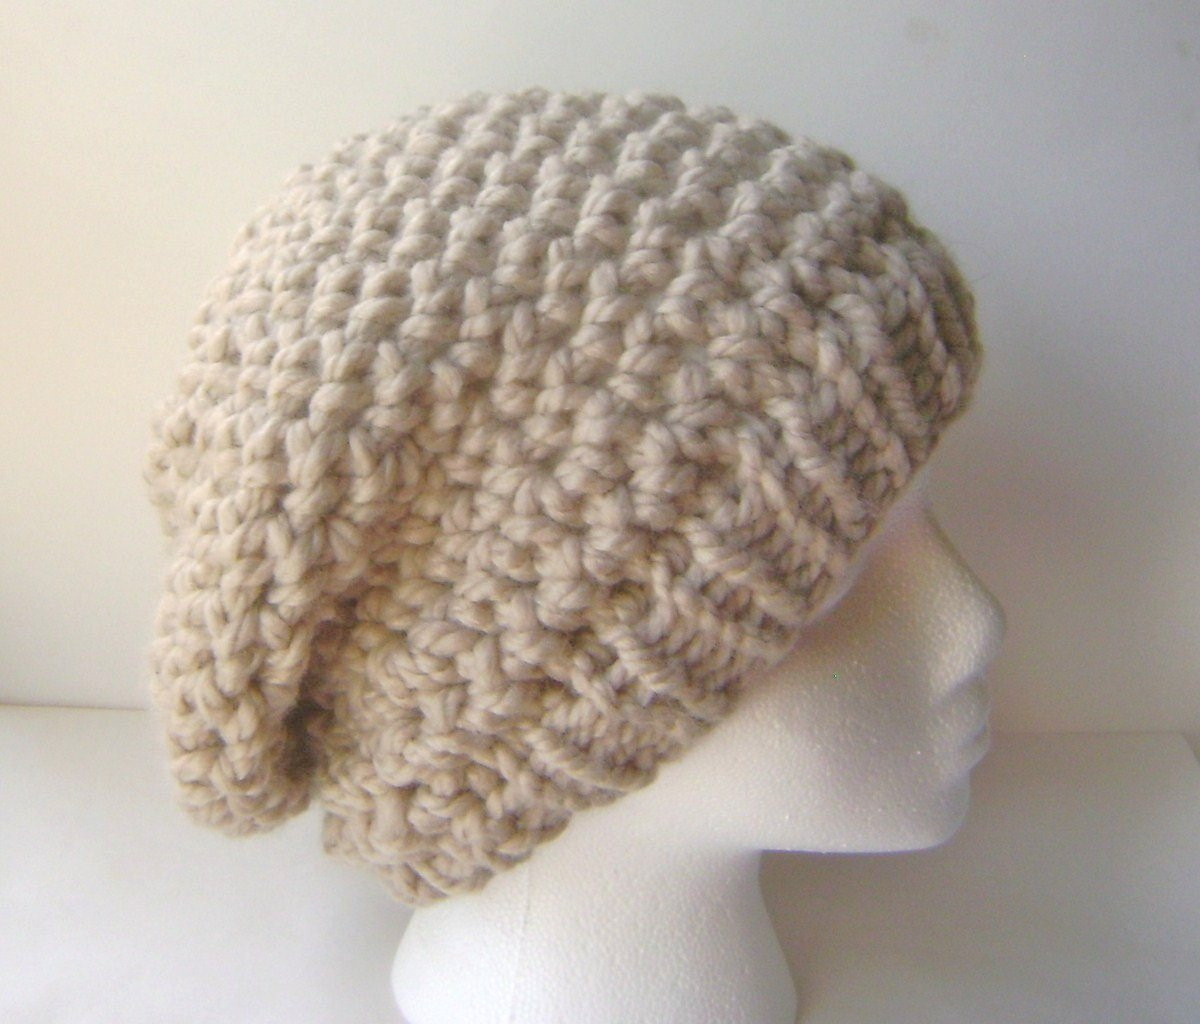 Unique Pdf Crochet Pattern Chunky Crochet Slouch Hat with Knit or Chunky Crochet Beanie Pattern Of Elegant Chunky Knit Hat Pattern Roundup 12 Quick & Cozy Patterns Chunky Crochet Beanie Pattern